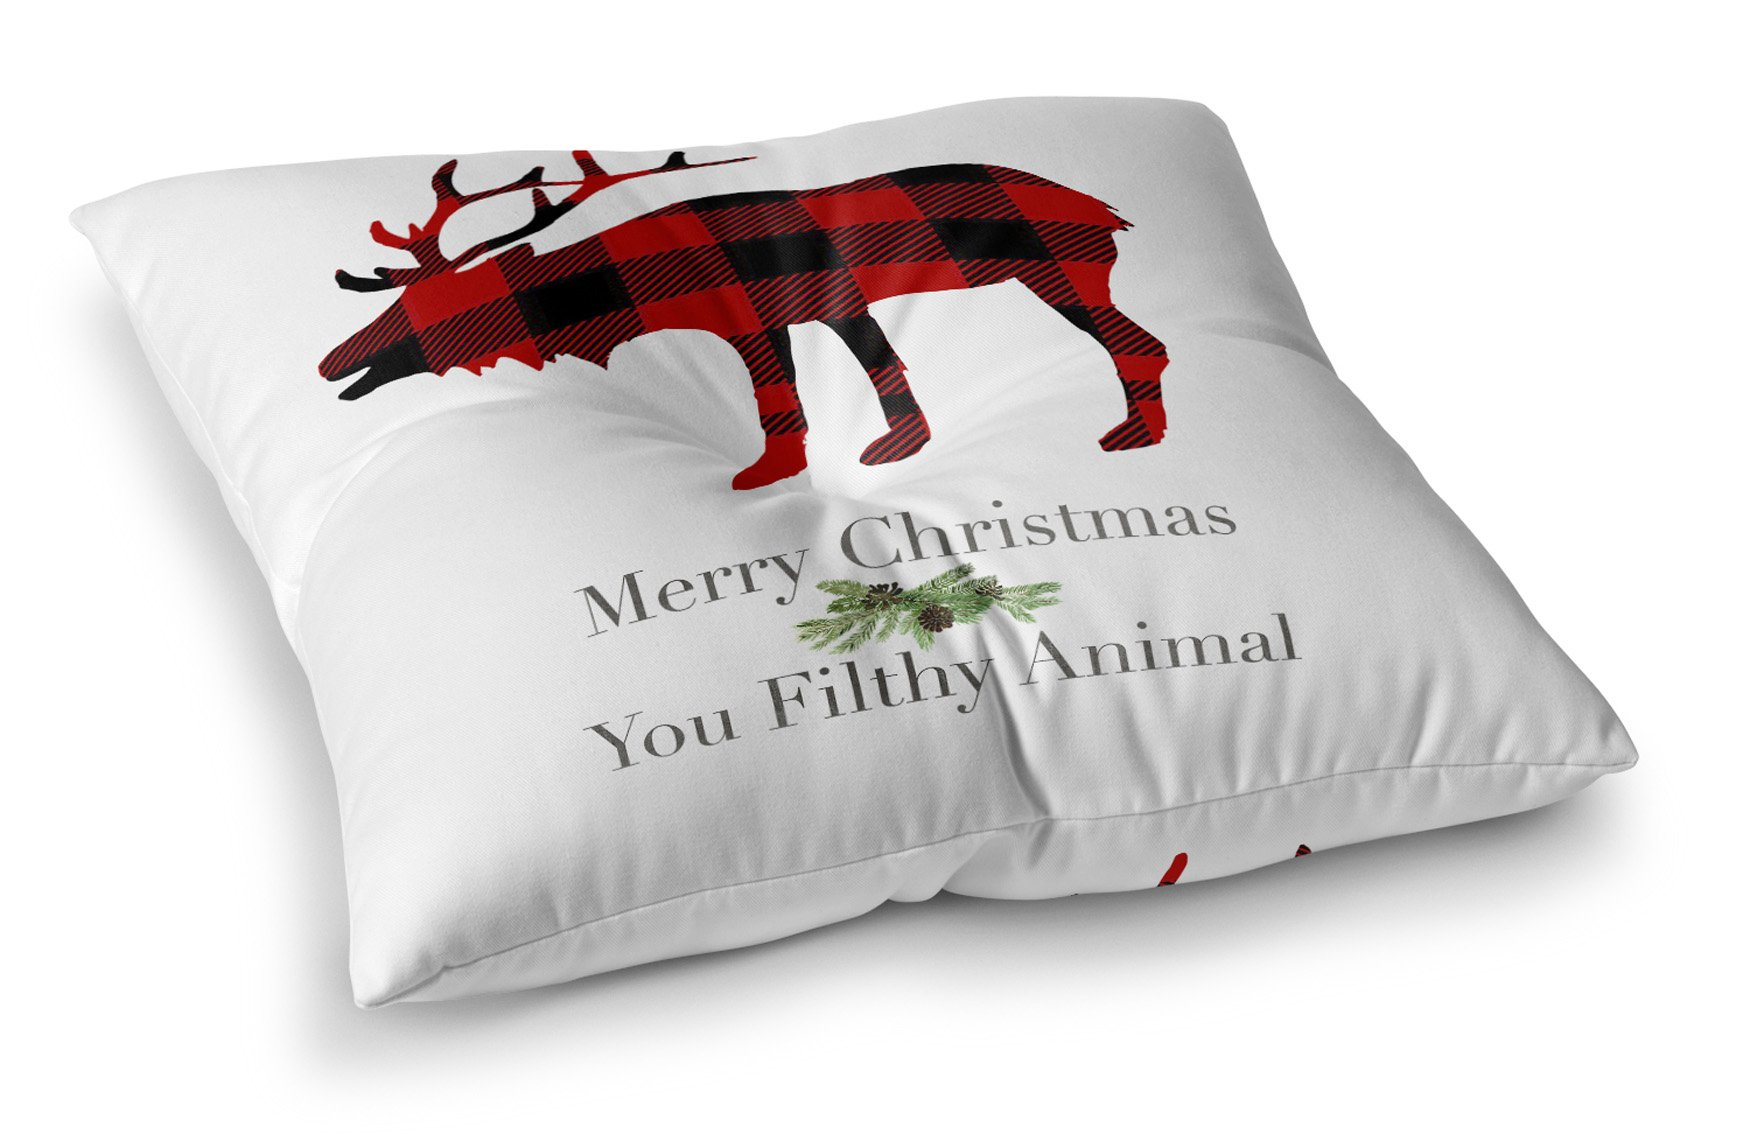 KAVKA DESIGNS Filthy Animal Floor Pillow, (Red/Black/Green/White) - TRADITIONS Collection, Size: 26x26x8 - (TELAVC1395FPS26)